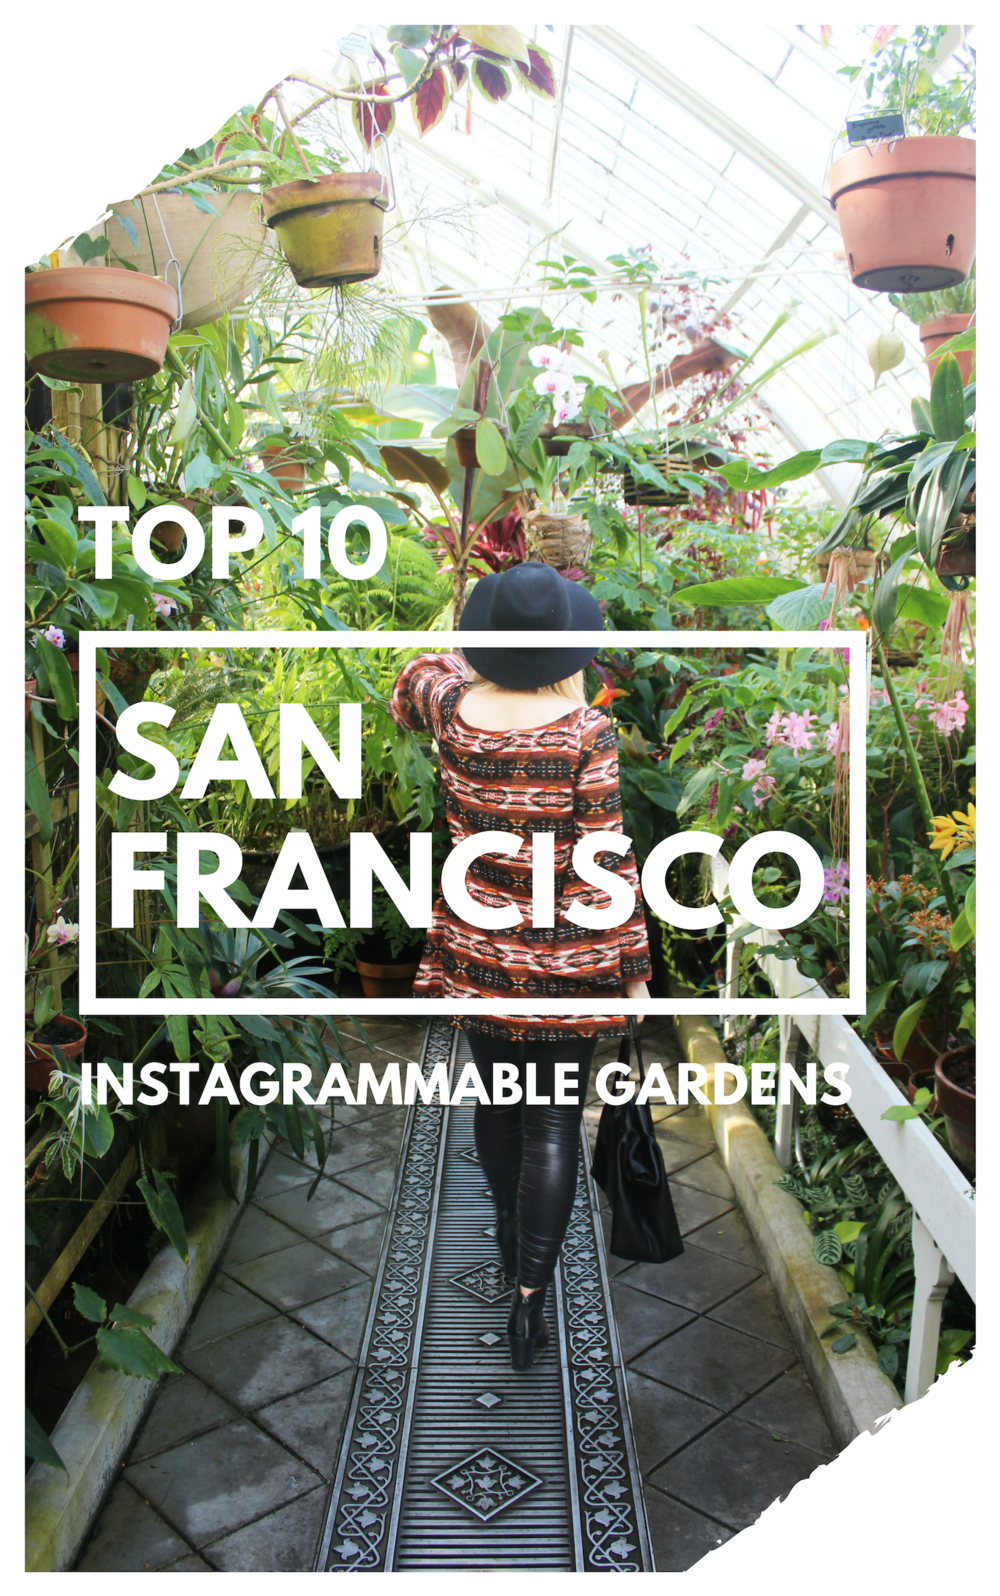 Top 10 Most Instagrammable Gardens in San Francisco